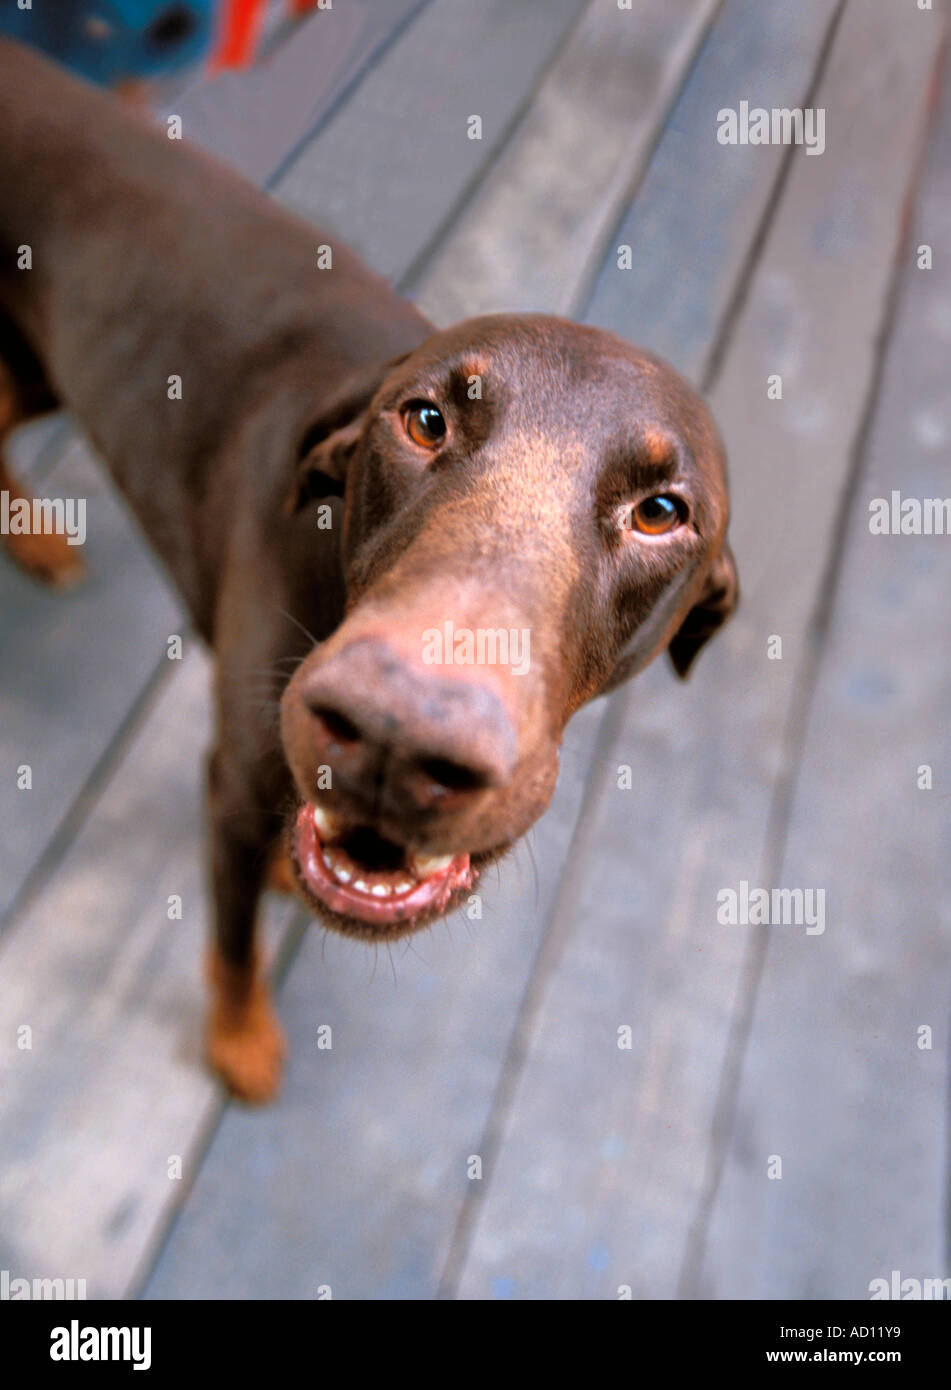 Dobermann dog standing from top - Stock Image